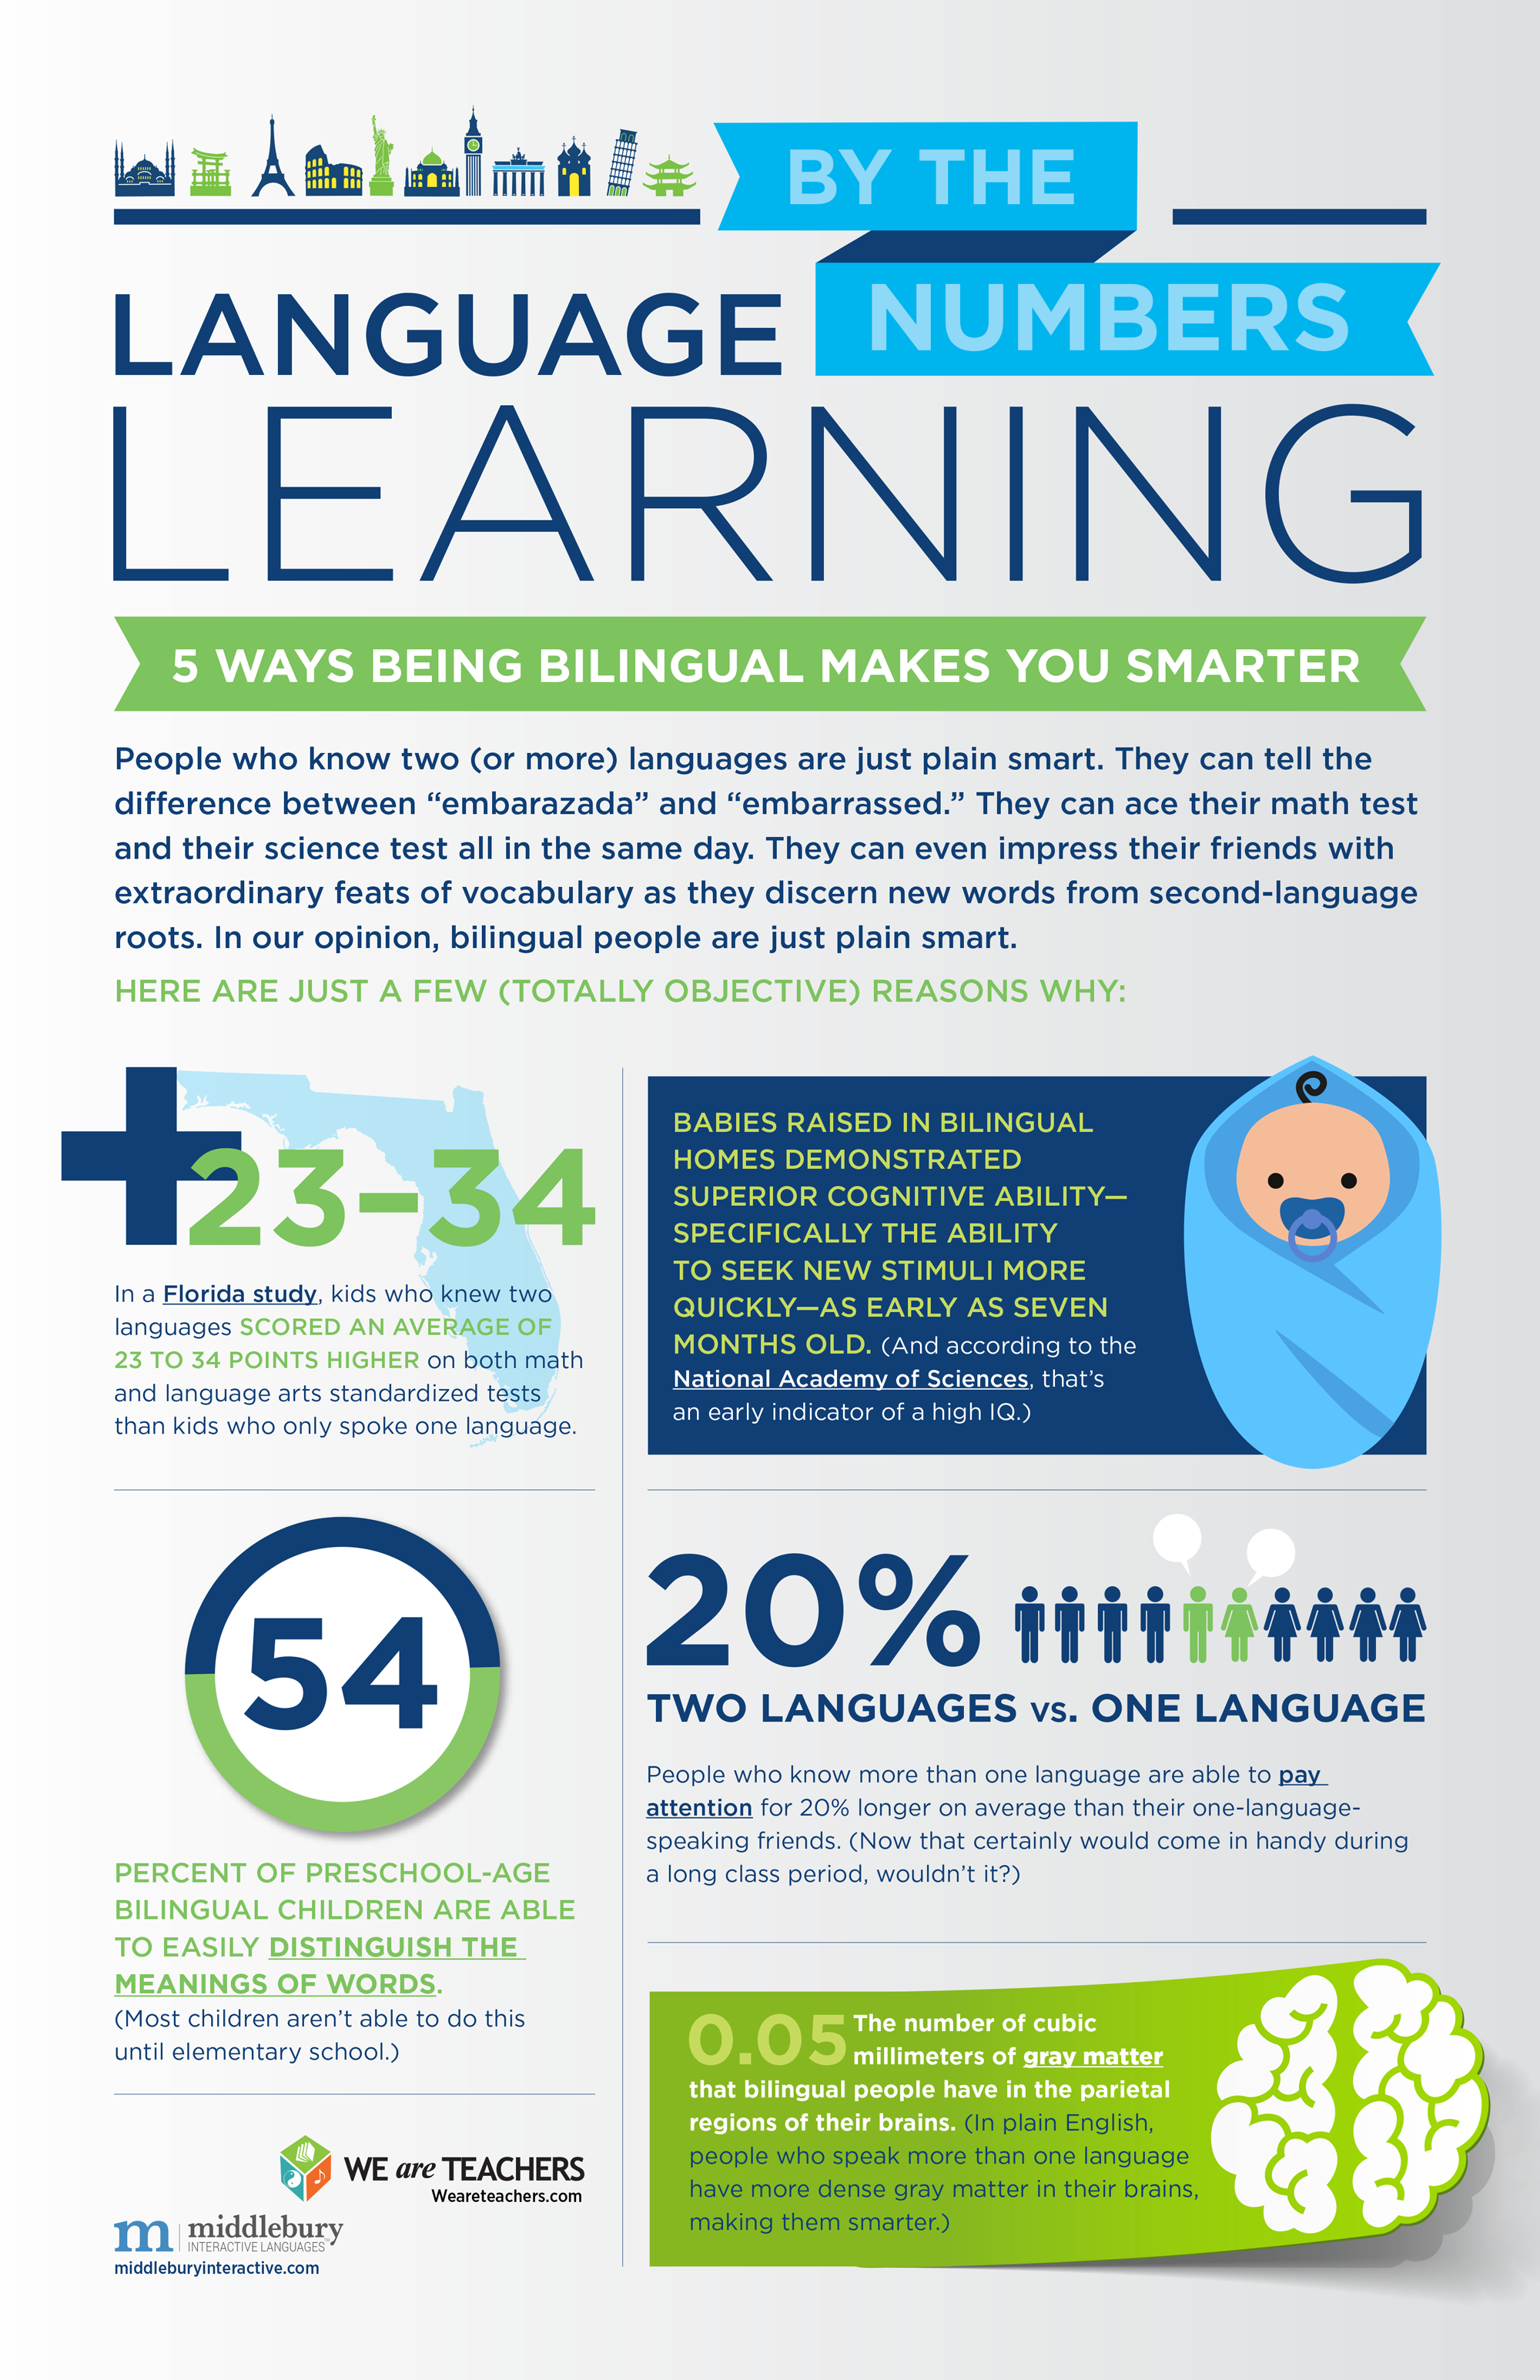 Classroom Poster Ways Being Bilingual Makes You Smarter - 5 main languages of the world